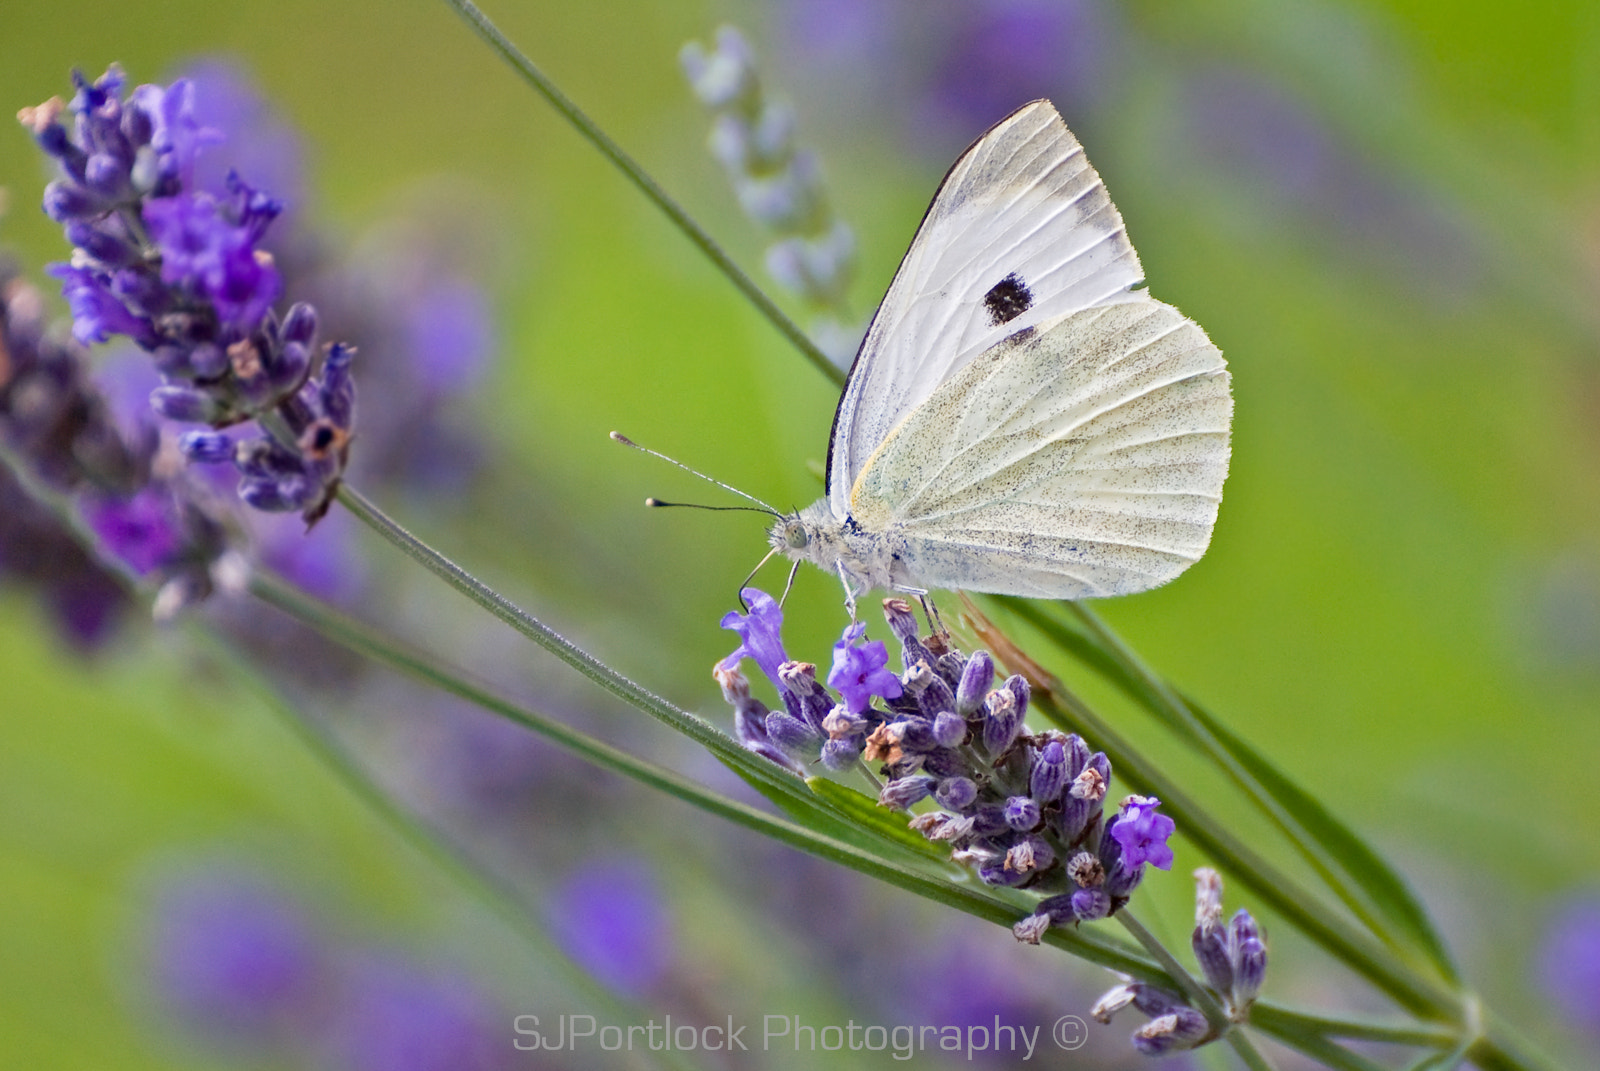 Photograph Small White  by Stephen Portlock on 500px